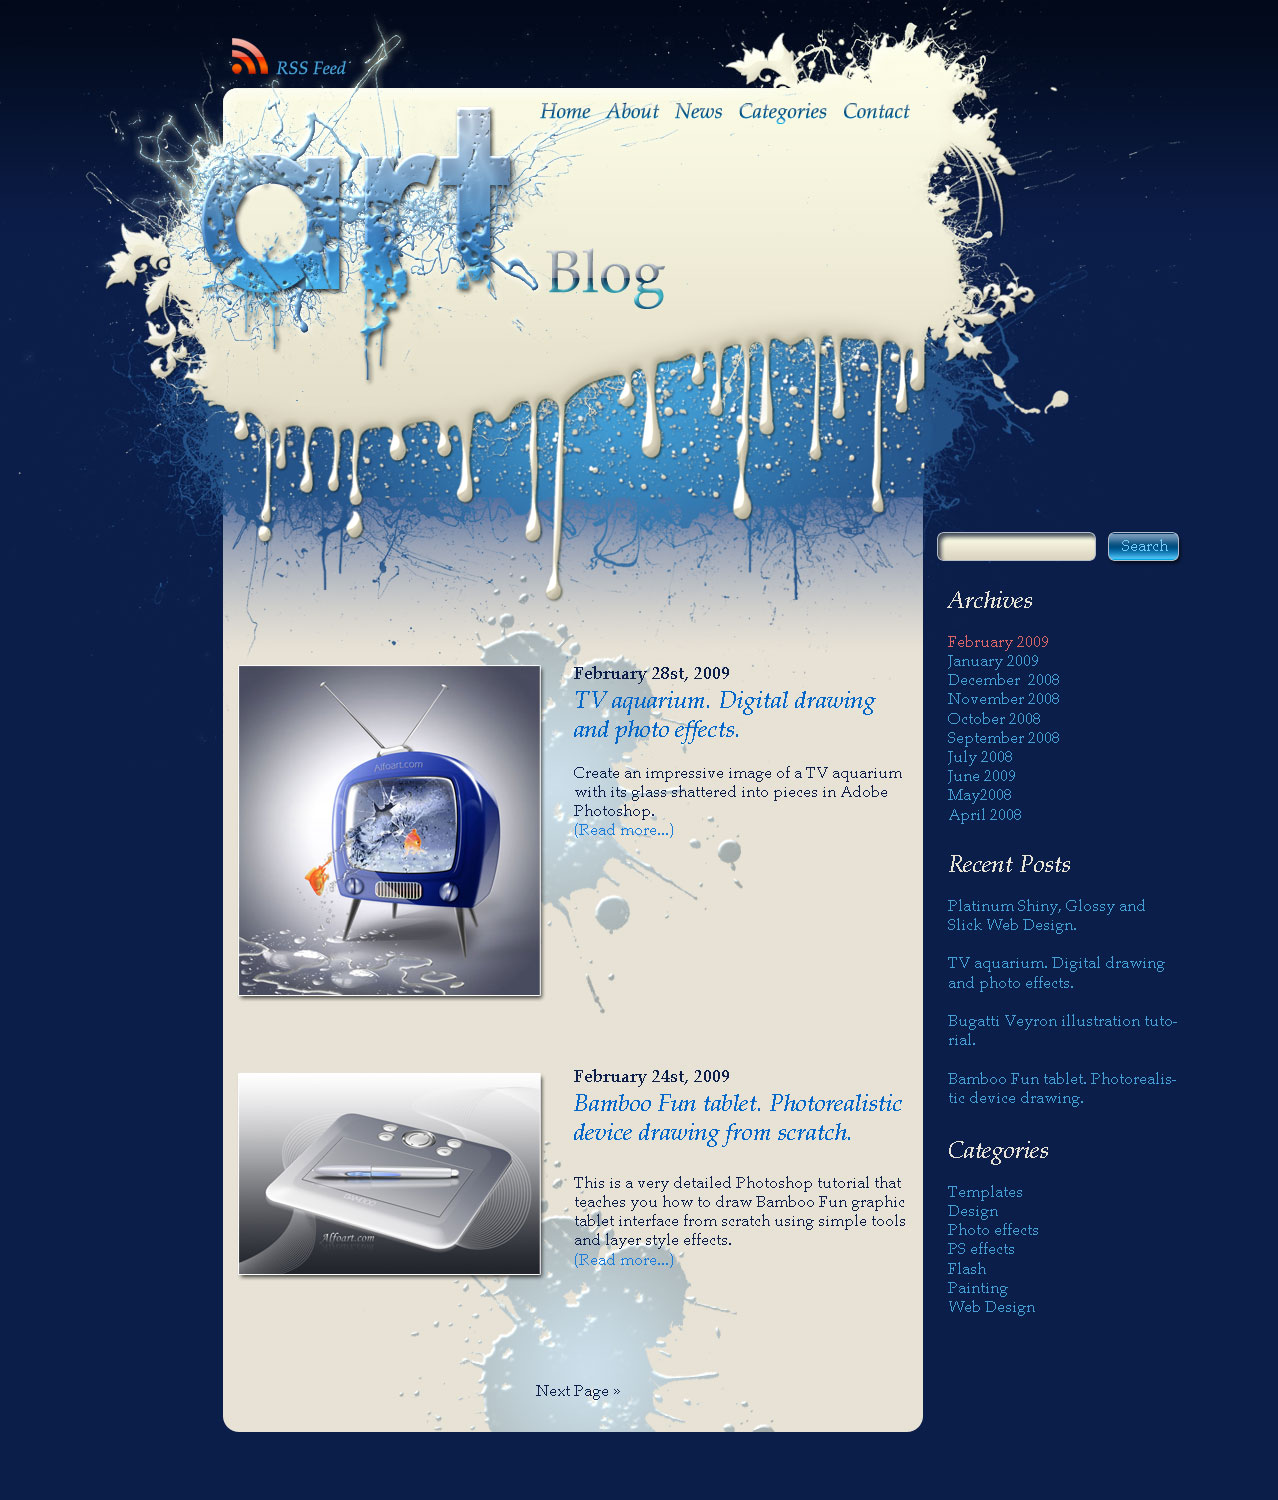 Paint Splatters Splash Silver Design How To Create A Cool And - Splash website templates